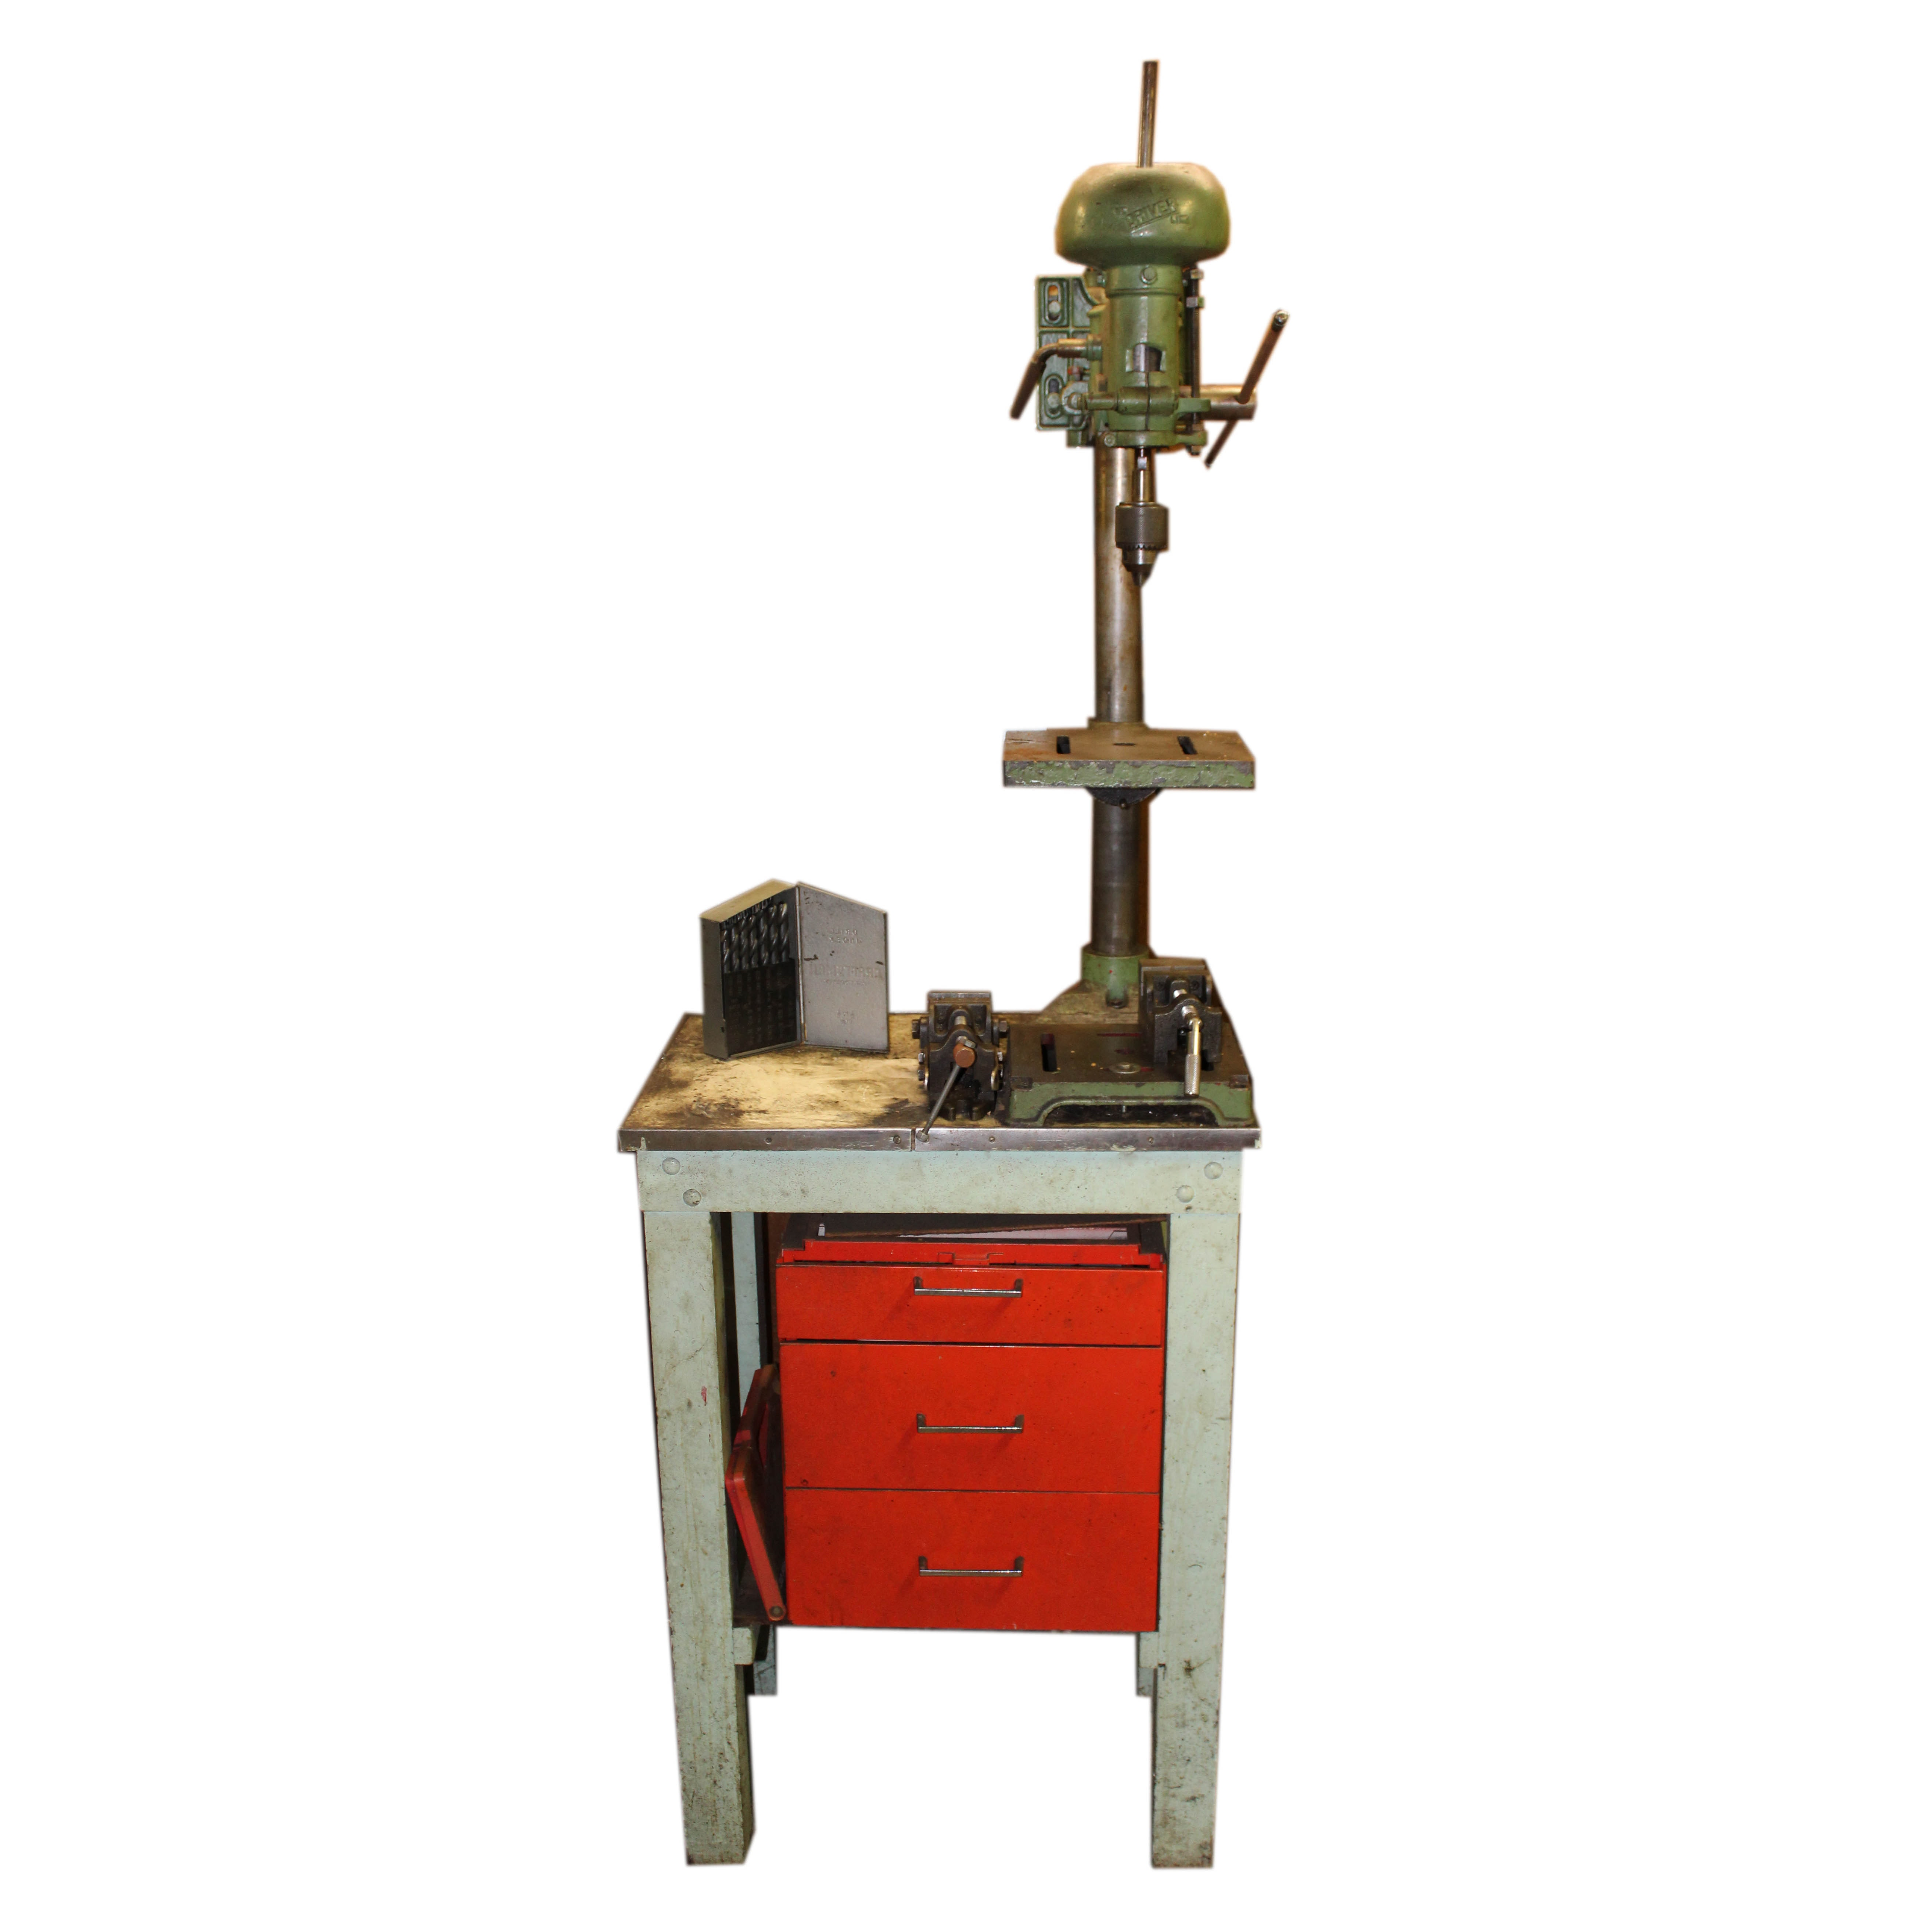 Vintage The Driver Line Drill with Stand and Drill Bits